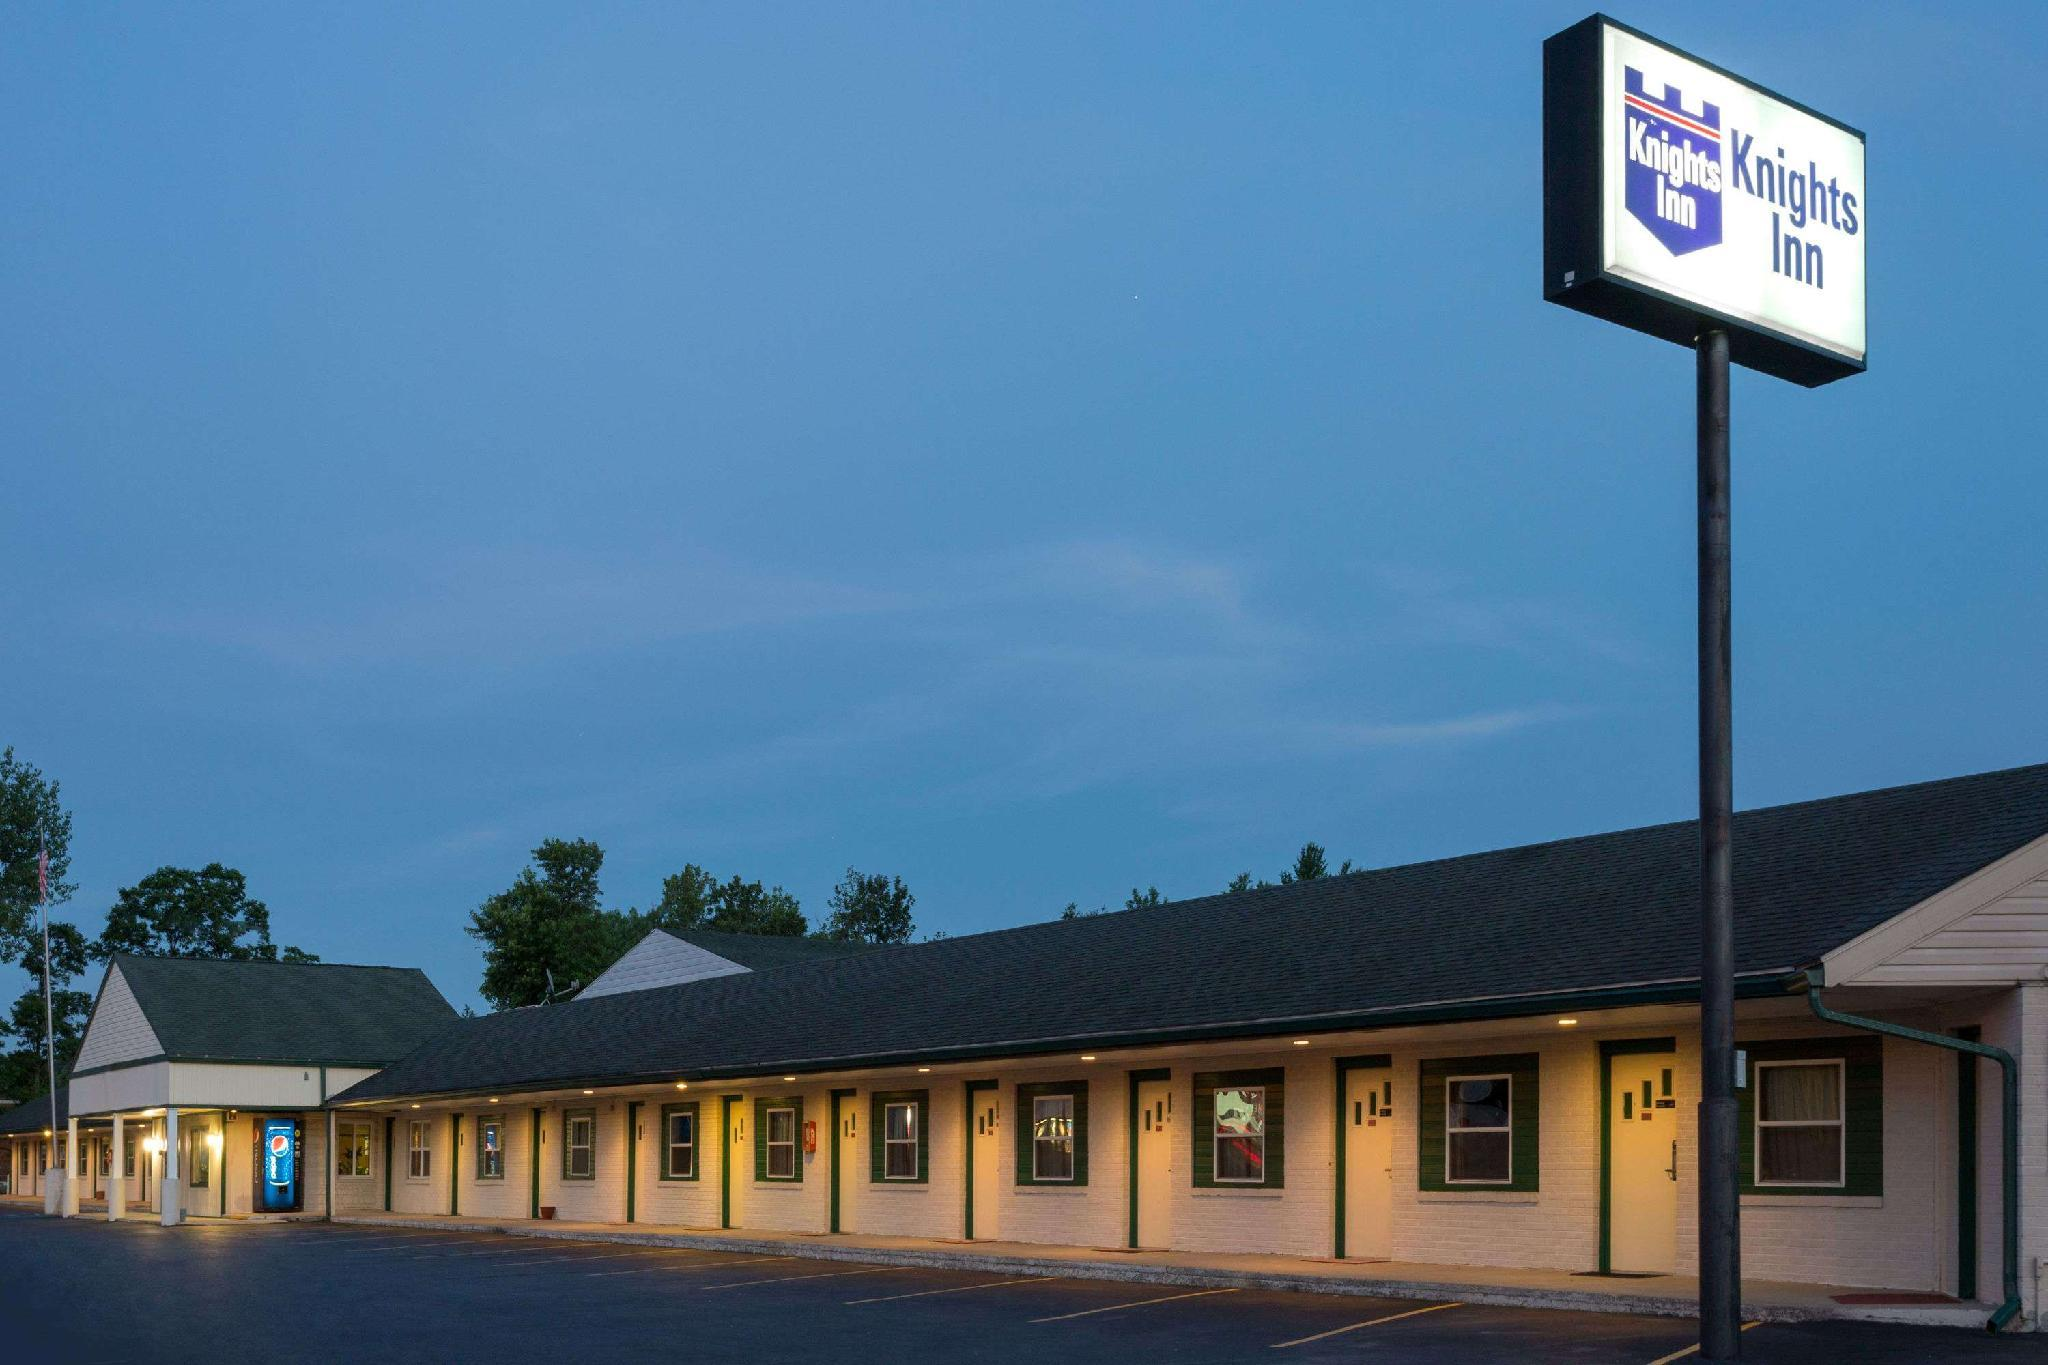 Knights Inn - Athens, OH, Athens